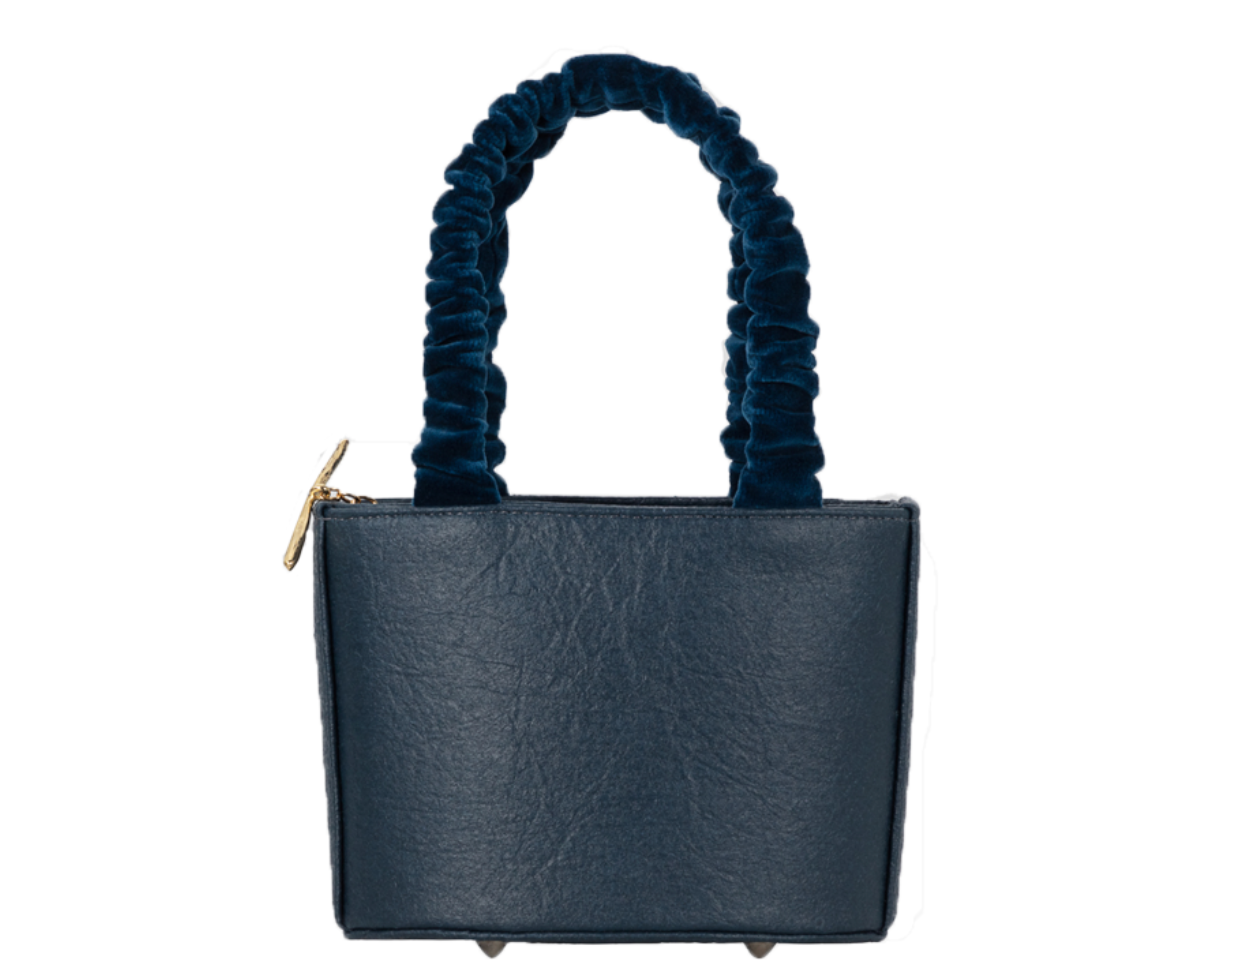 Sophia Navy Vegan Leather Bag Velvet Strap